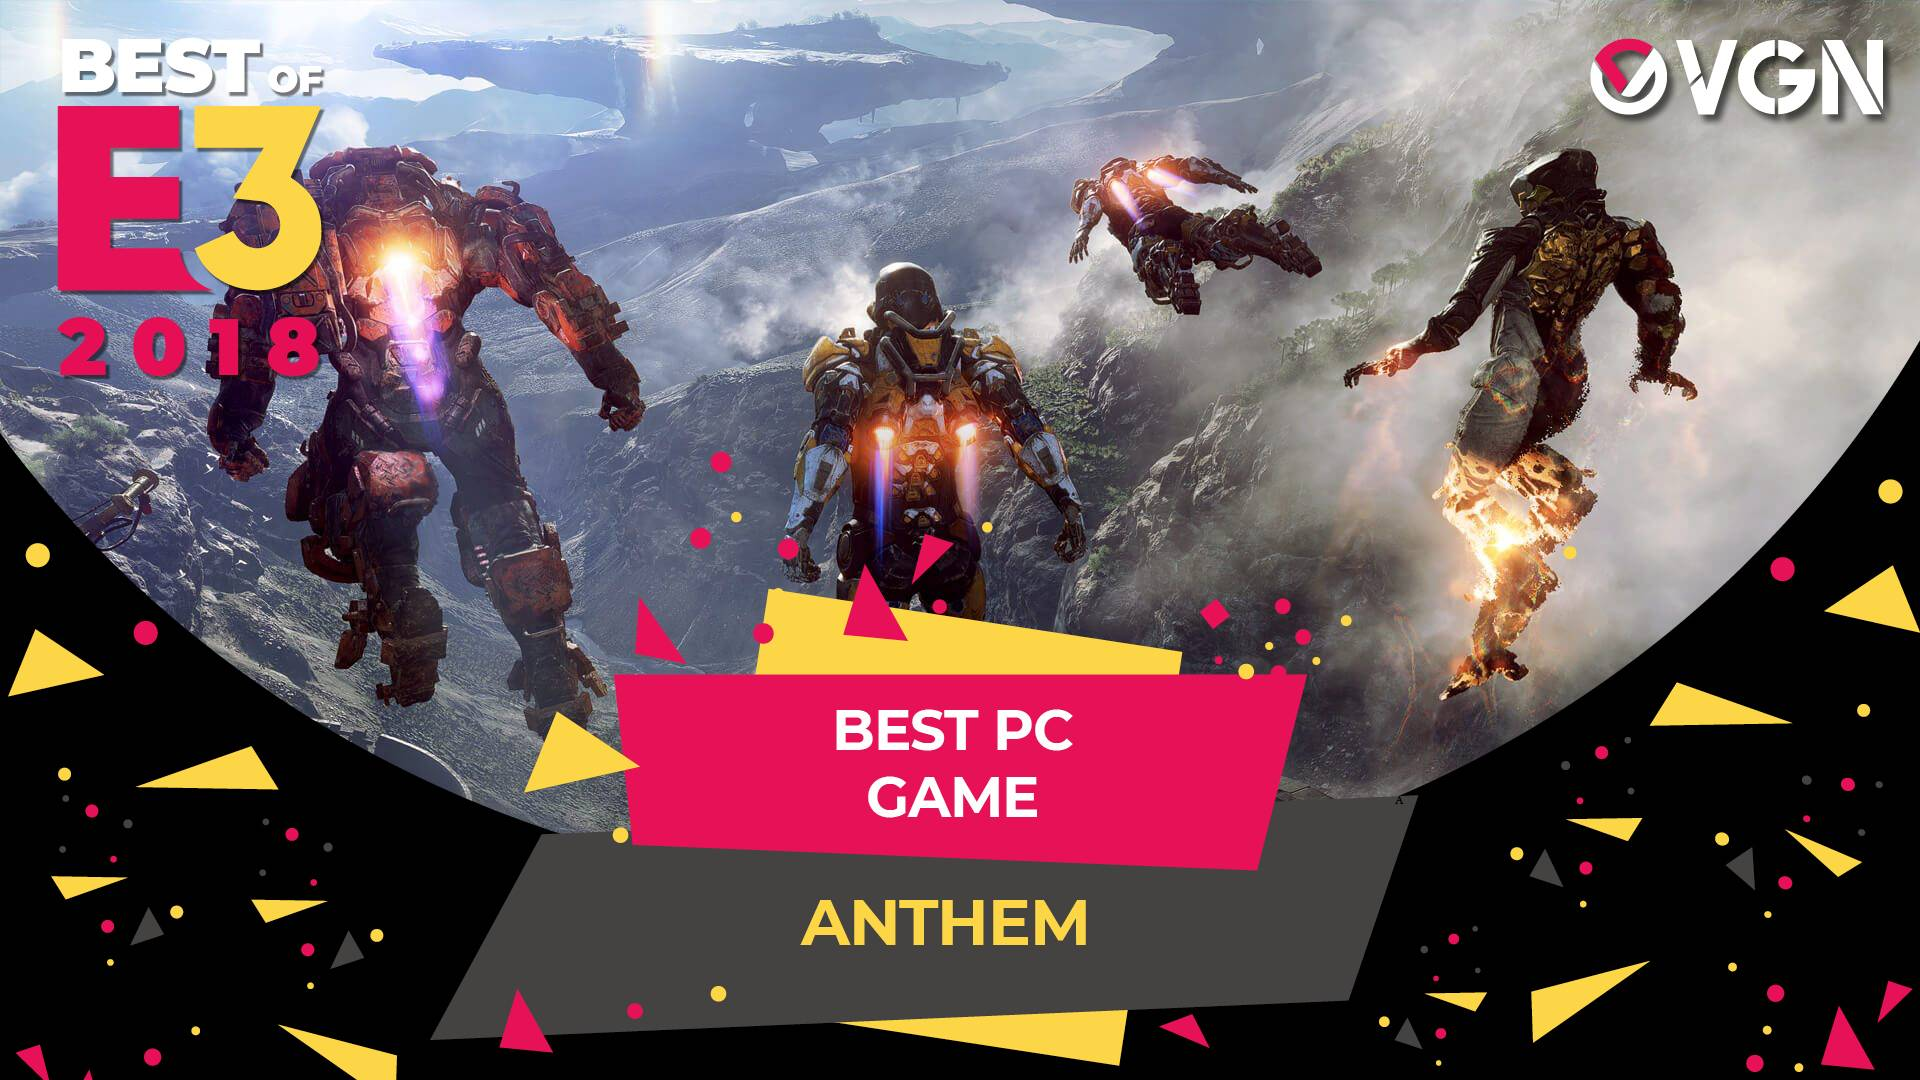 E3 2018 - Best PC Game - Anthem